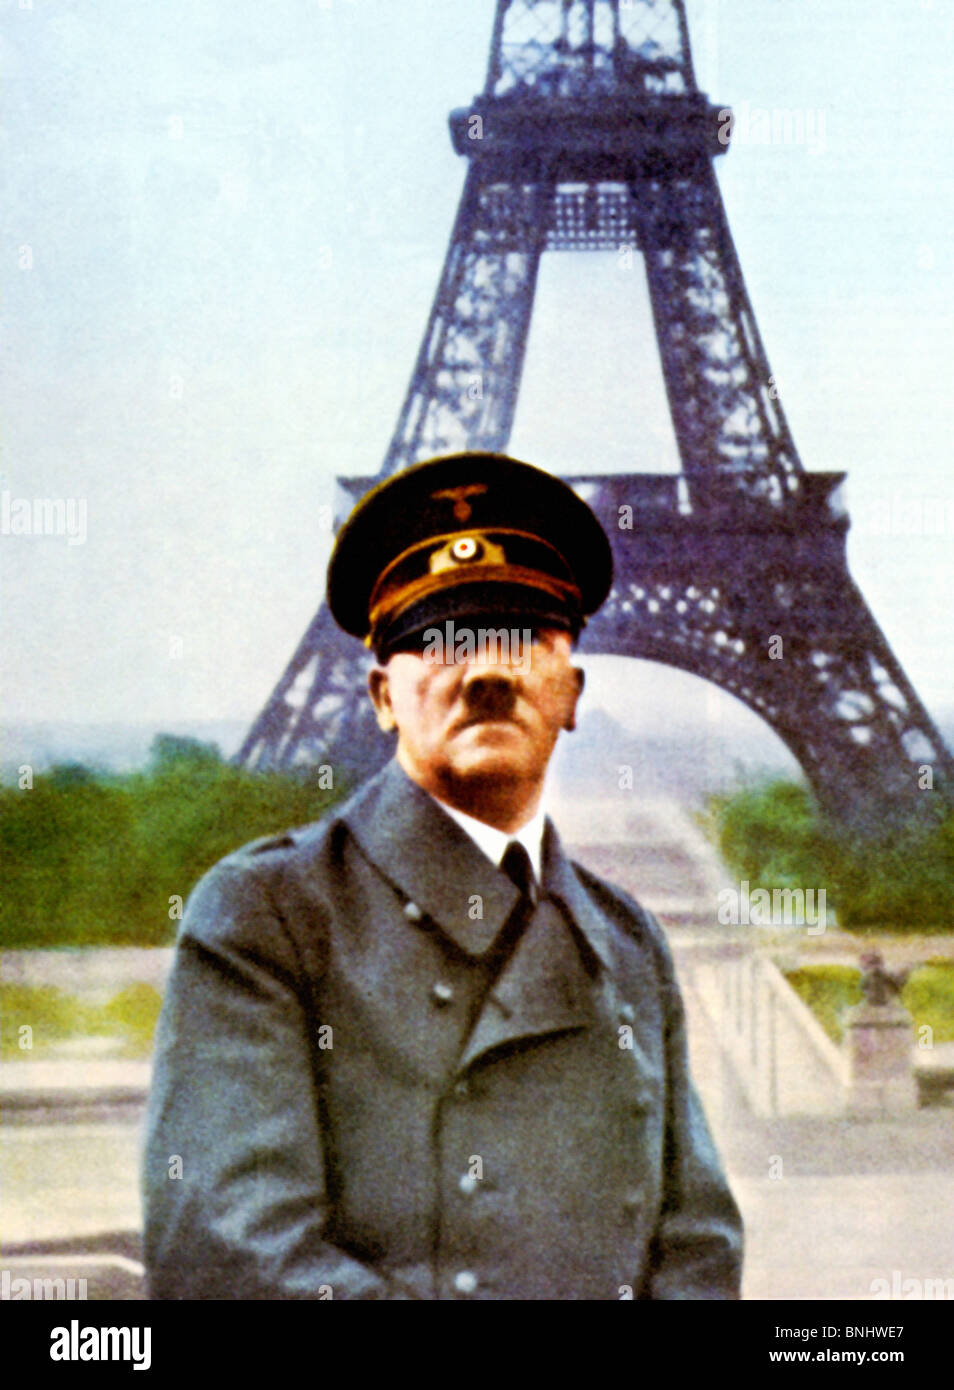 World War II Adolf Hitler Paris Eiffel tower after the surrender agreement Armistice with France Second Compiegne - Stock Image